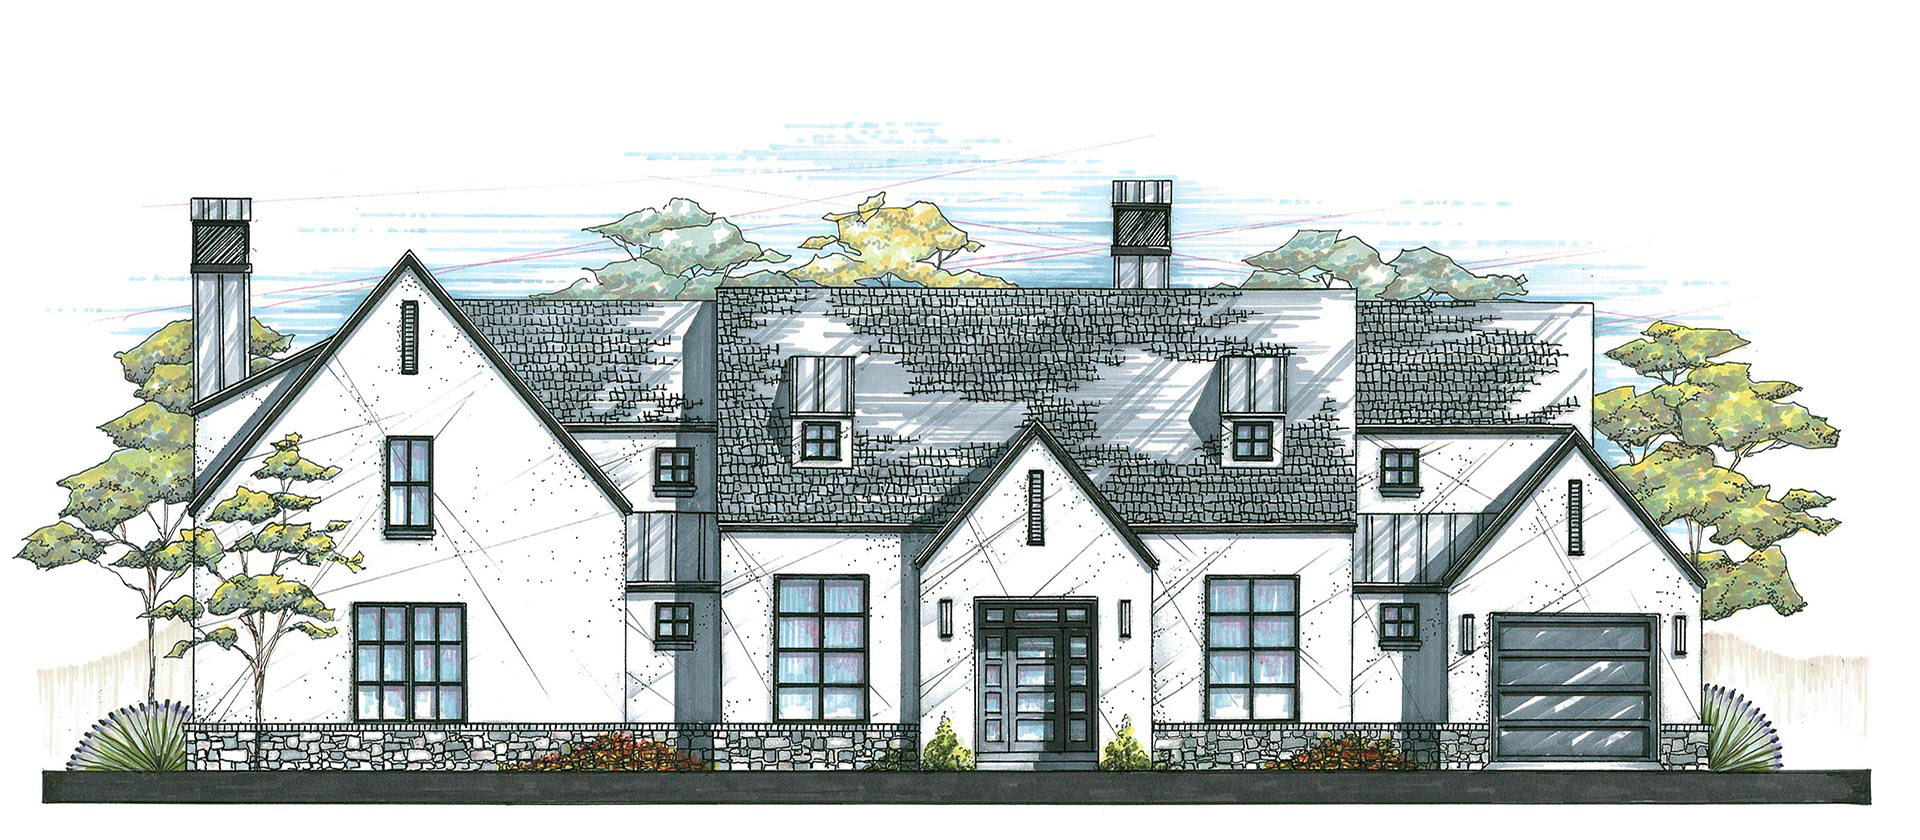 House sketch of a Modern Farmhouse design